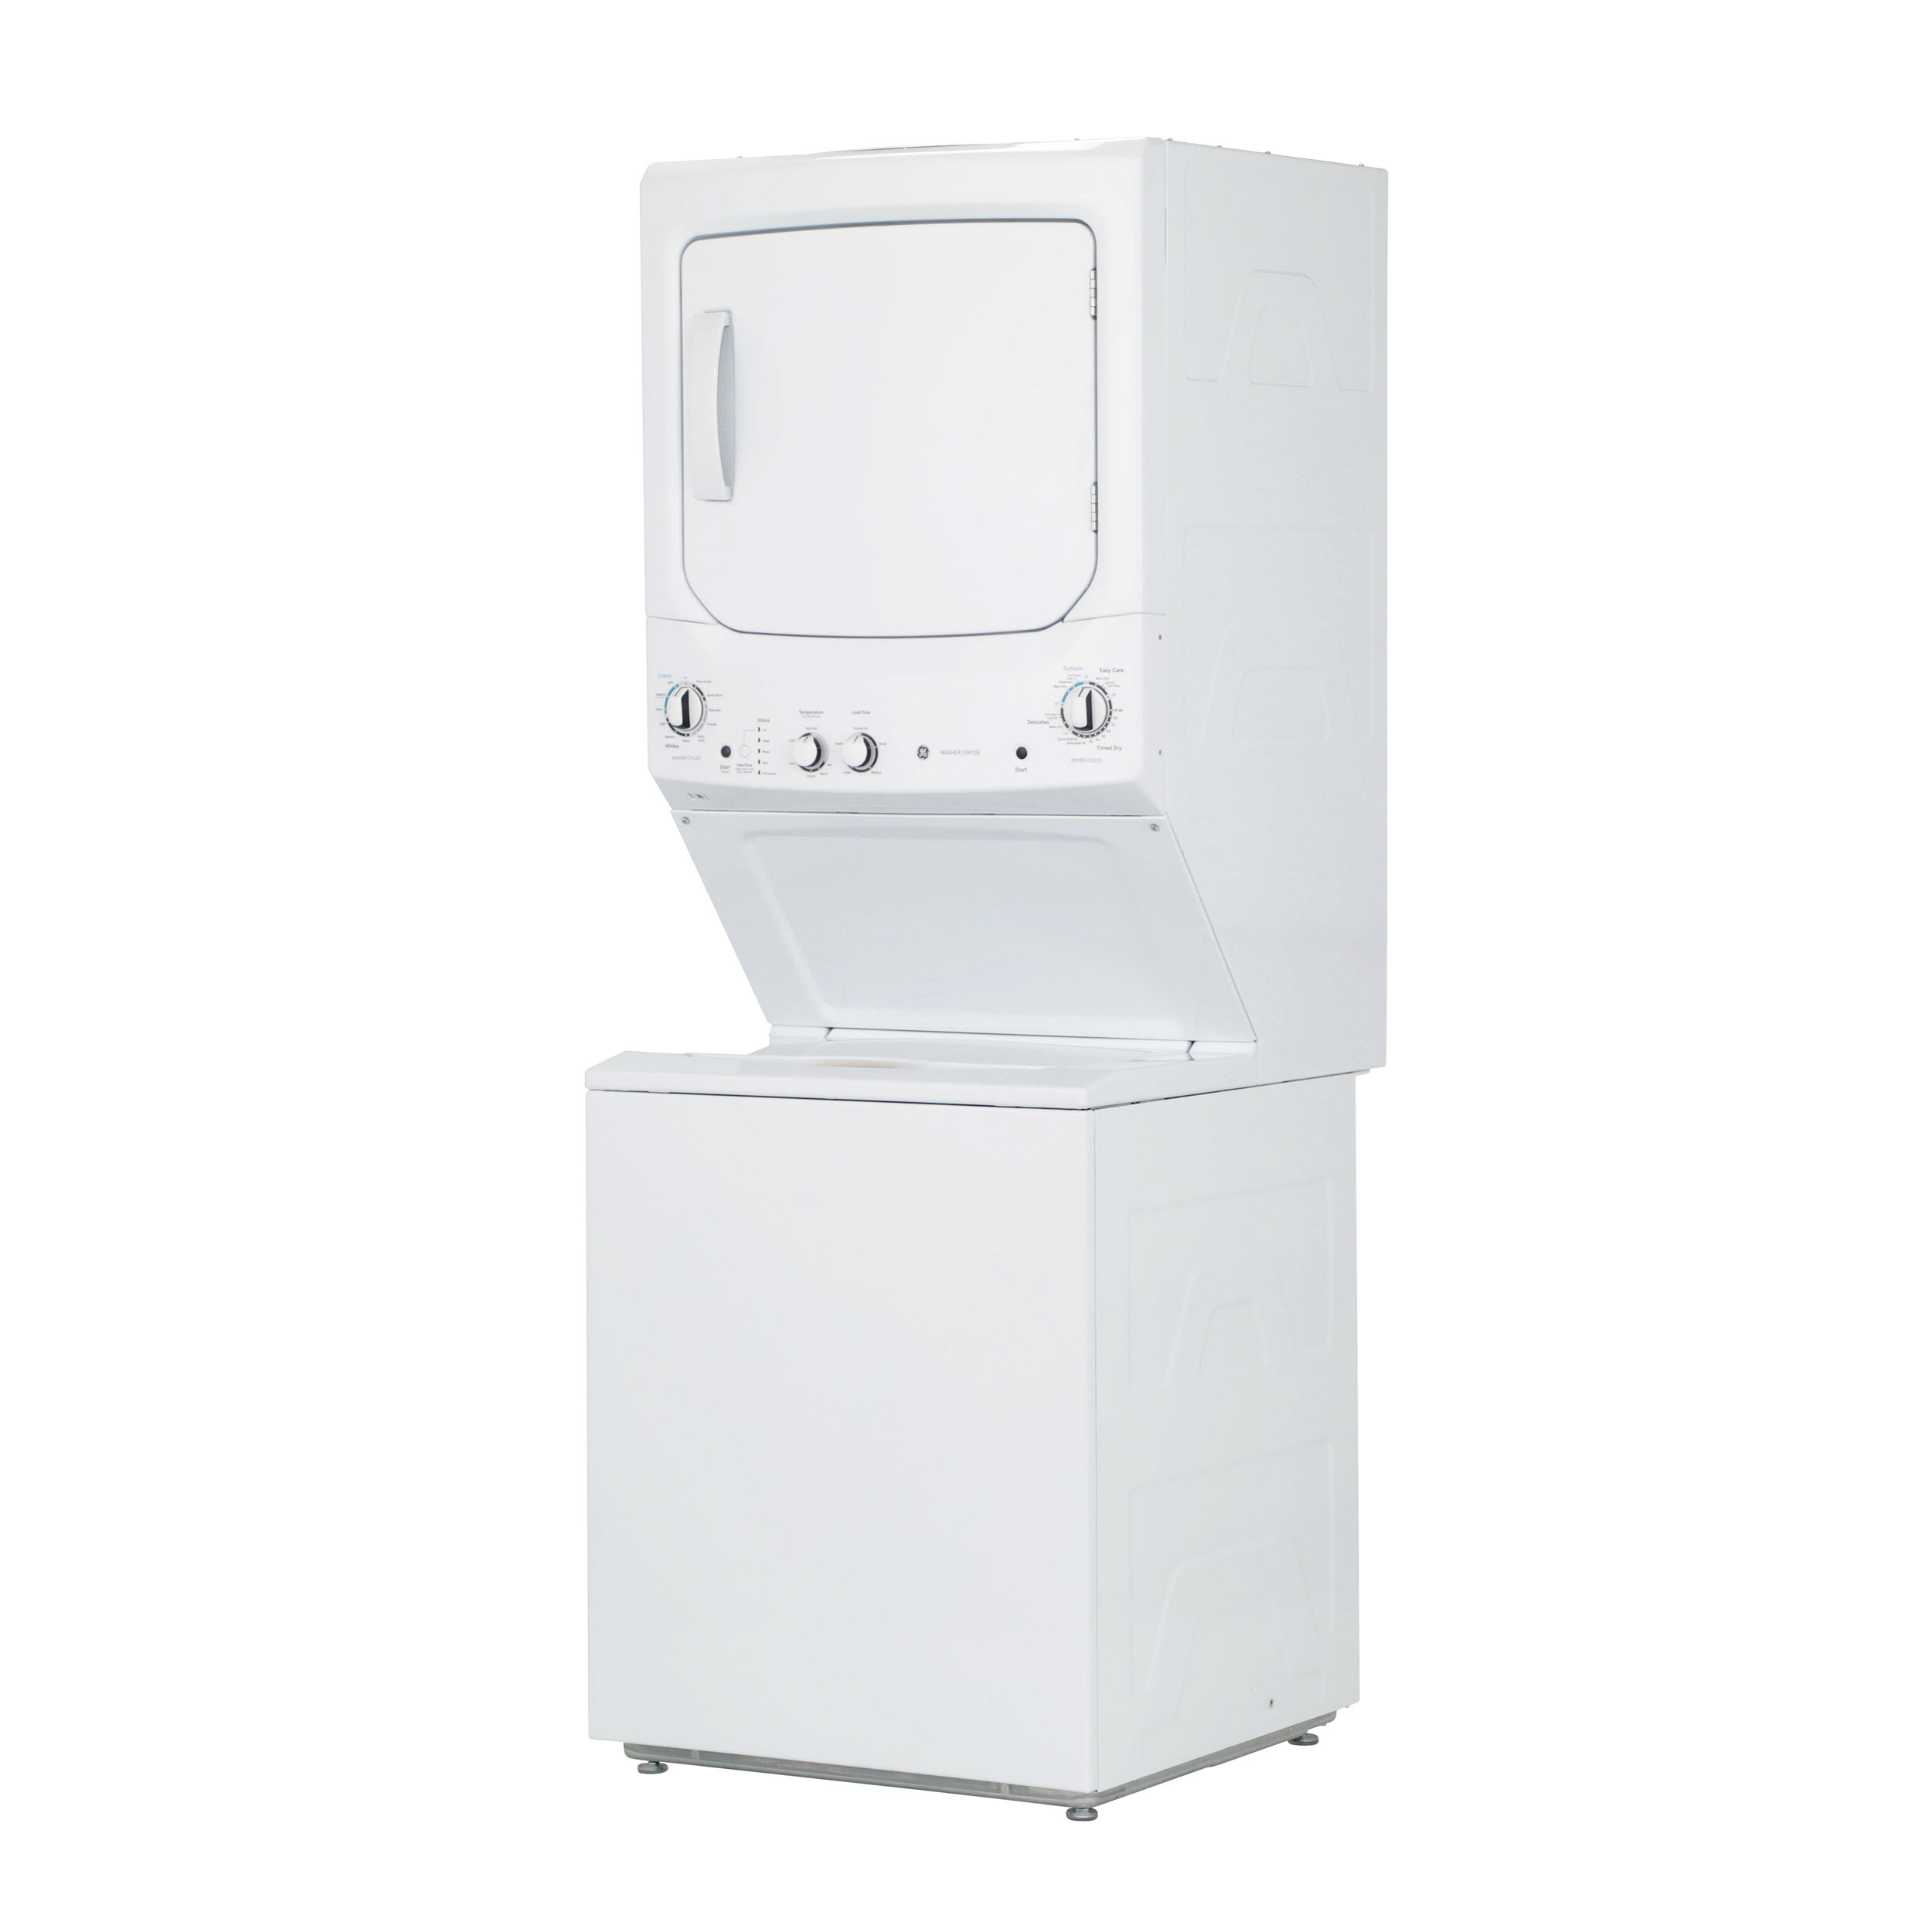 Model: GUD27ESSMWW | GE GE Unitized Spacemaker® 3.8 cu. ft. Capacity Washer with Stainless Steel Basket and 5.9 cu. ft. Capacity Electric Dryer